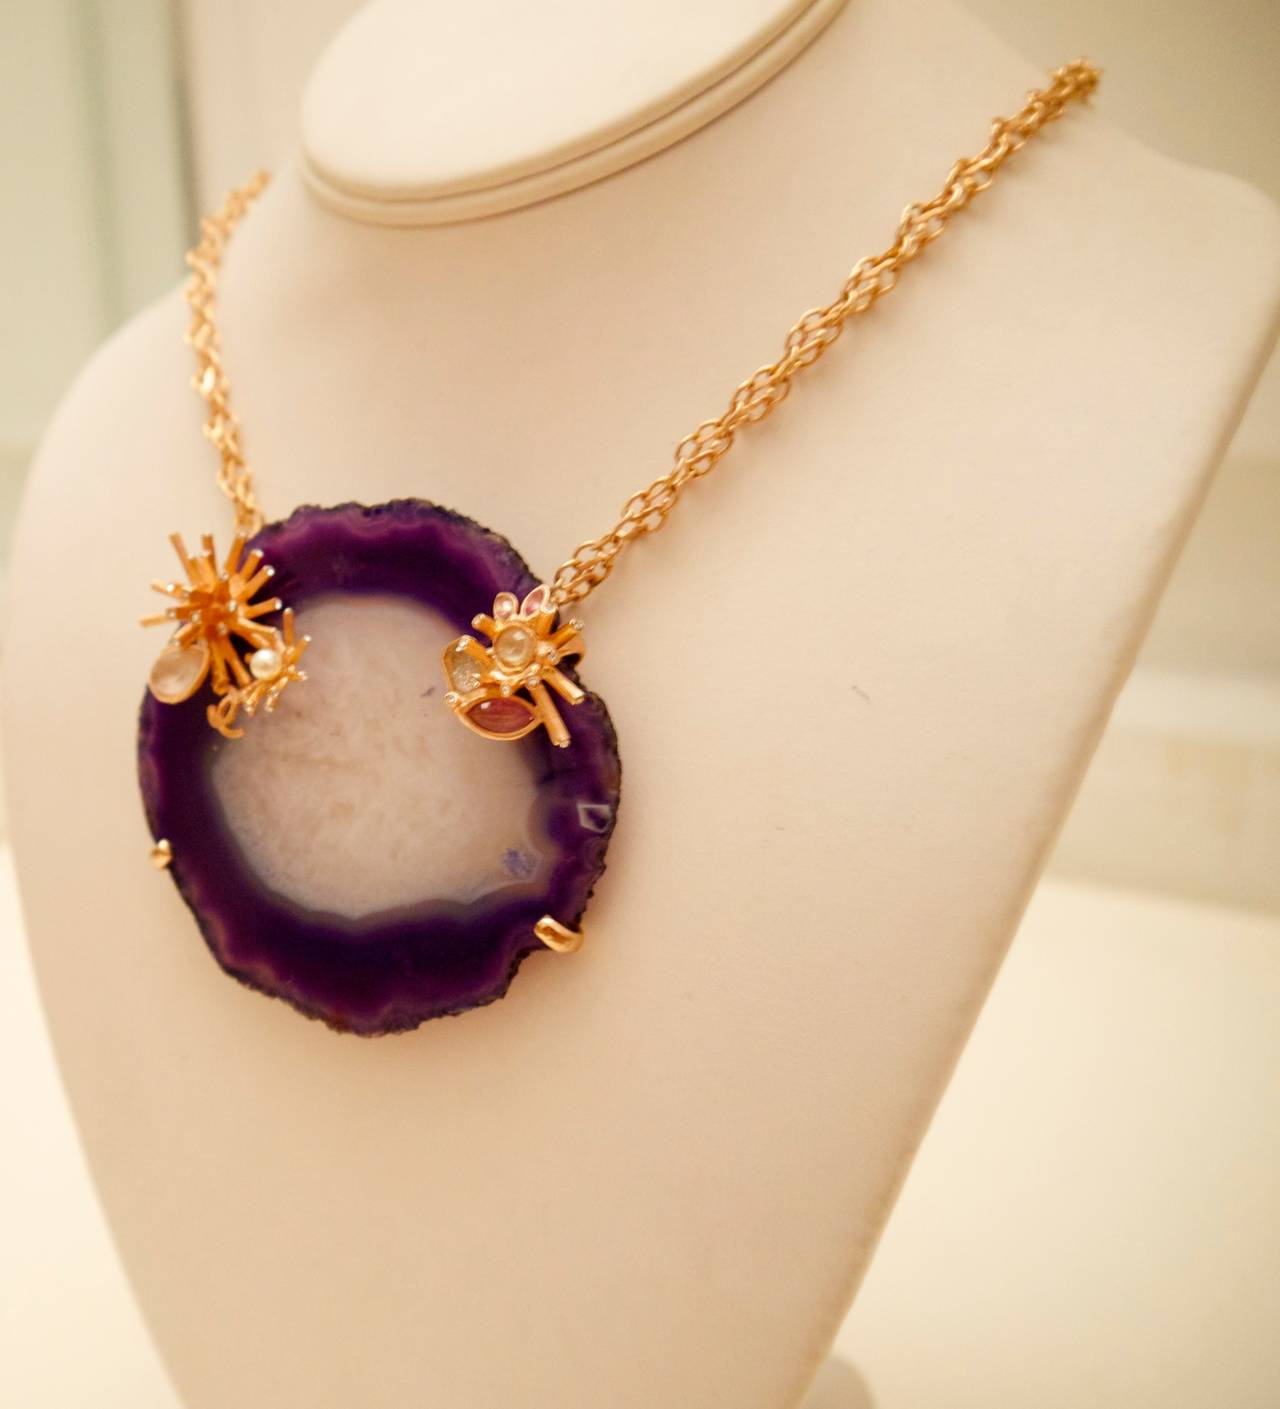 Chanel Purple and White Agate Cross Section Couture Necklace In As New Condition For Sale In Boca Raton, FL